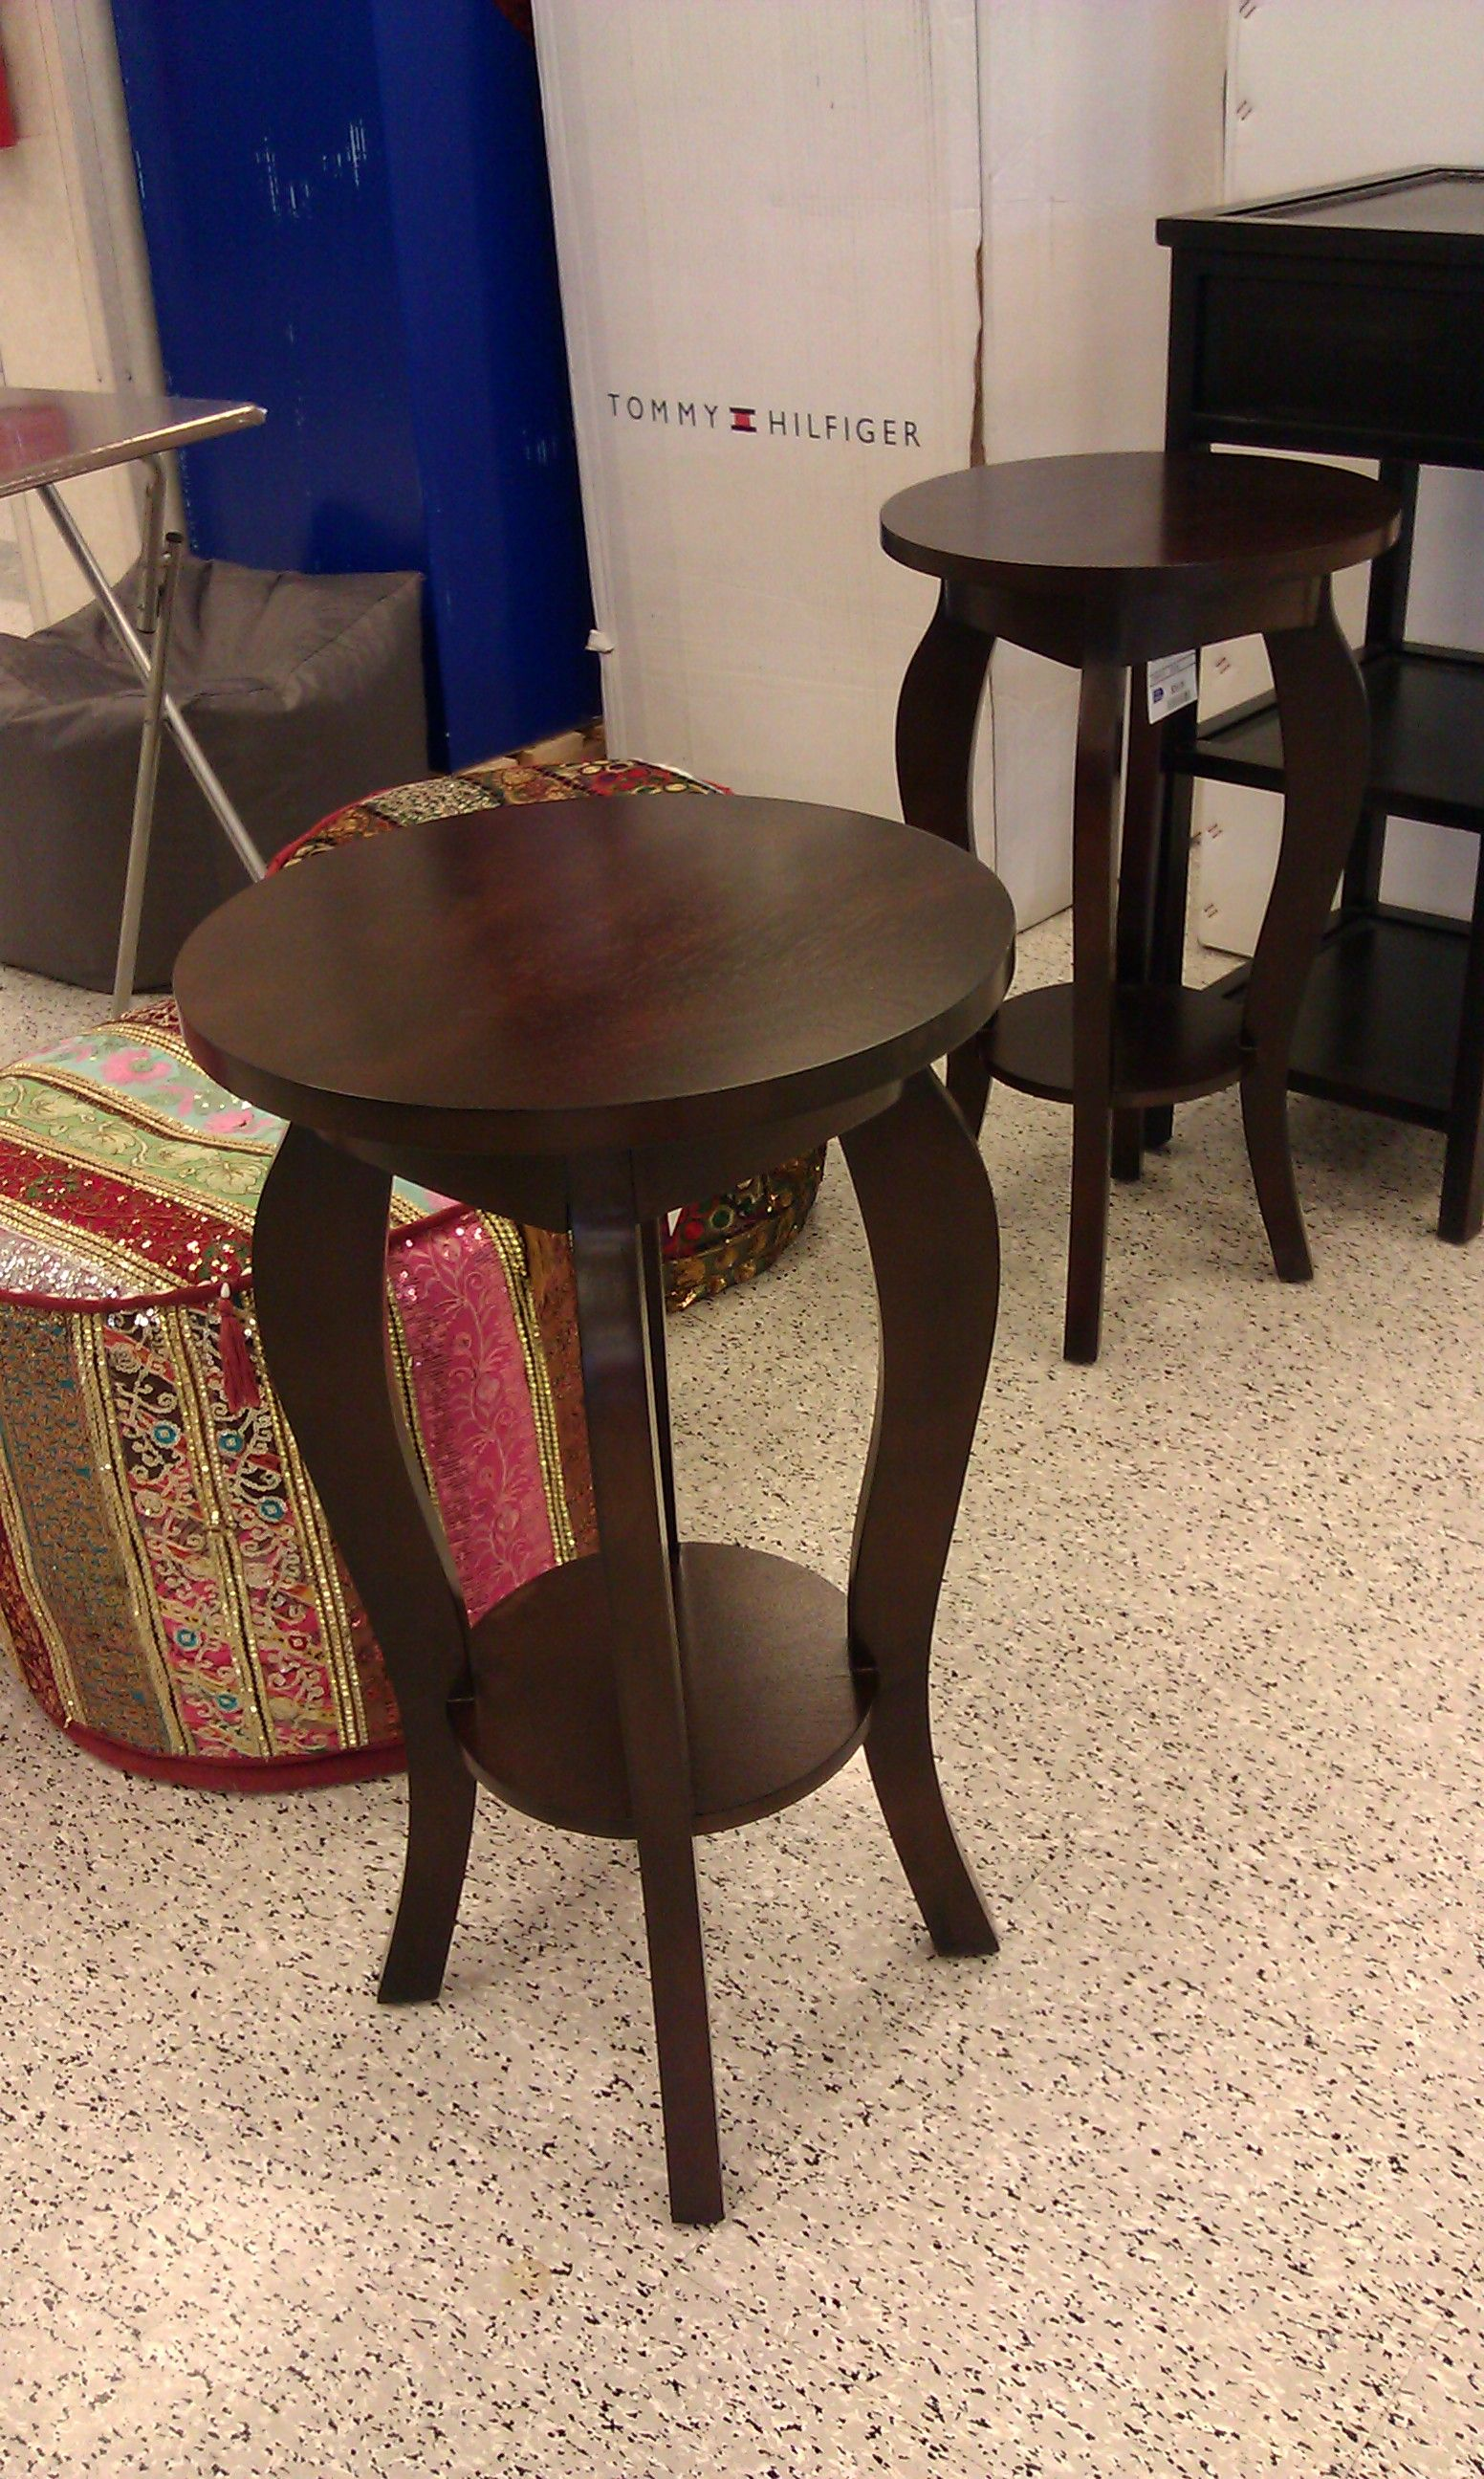 Small Round End Table At Ross Or TJ Maxx.